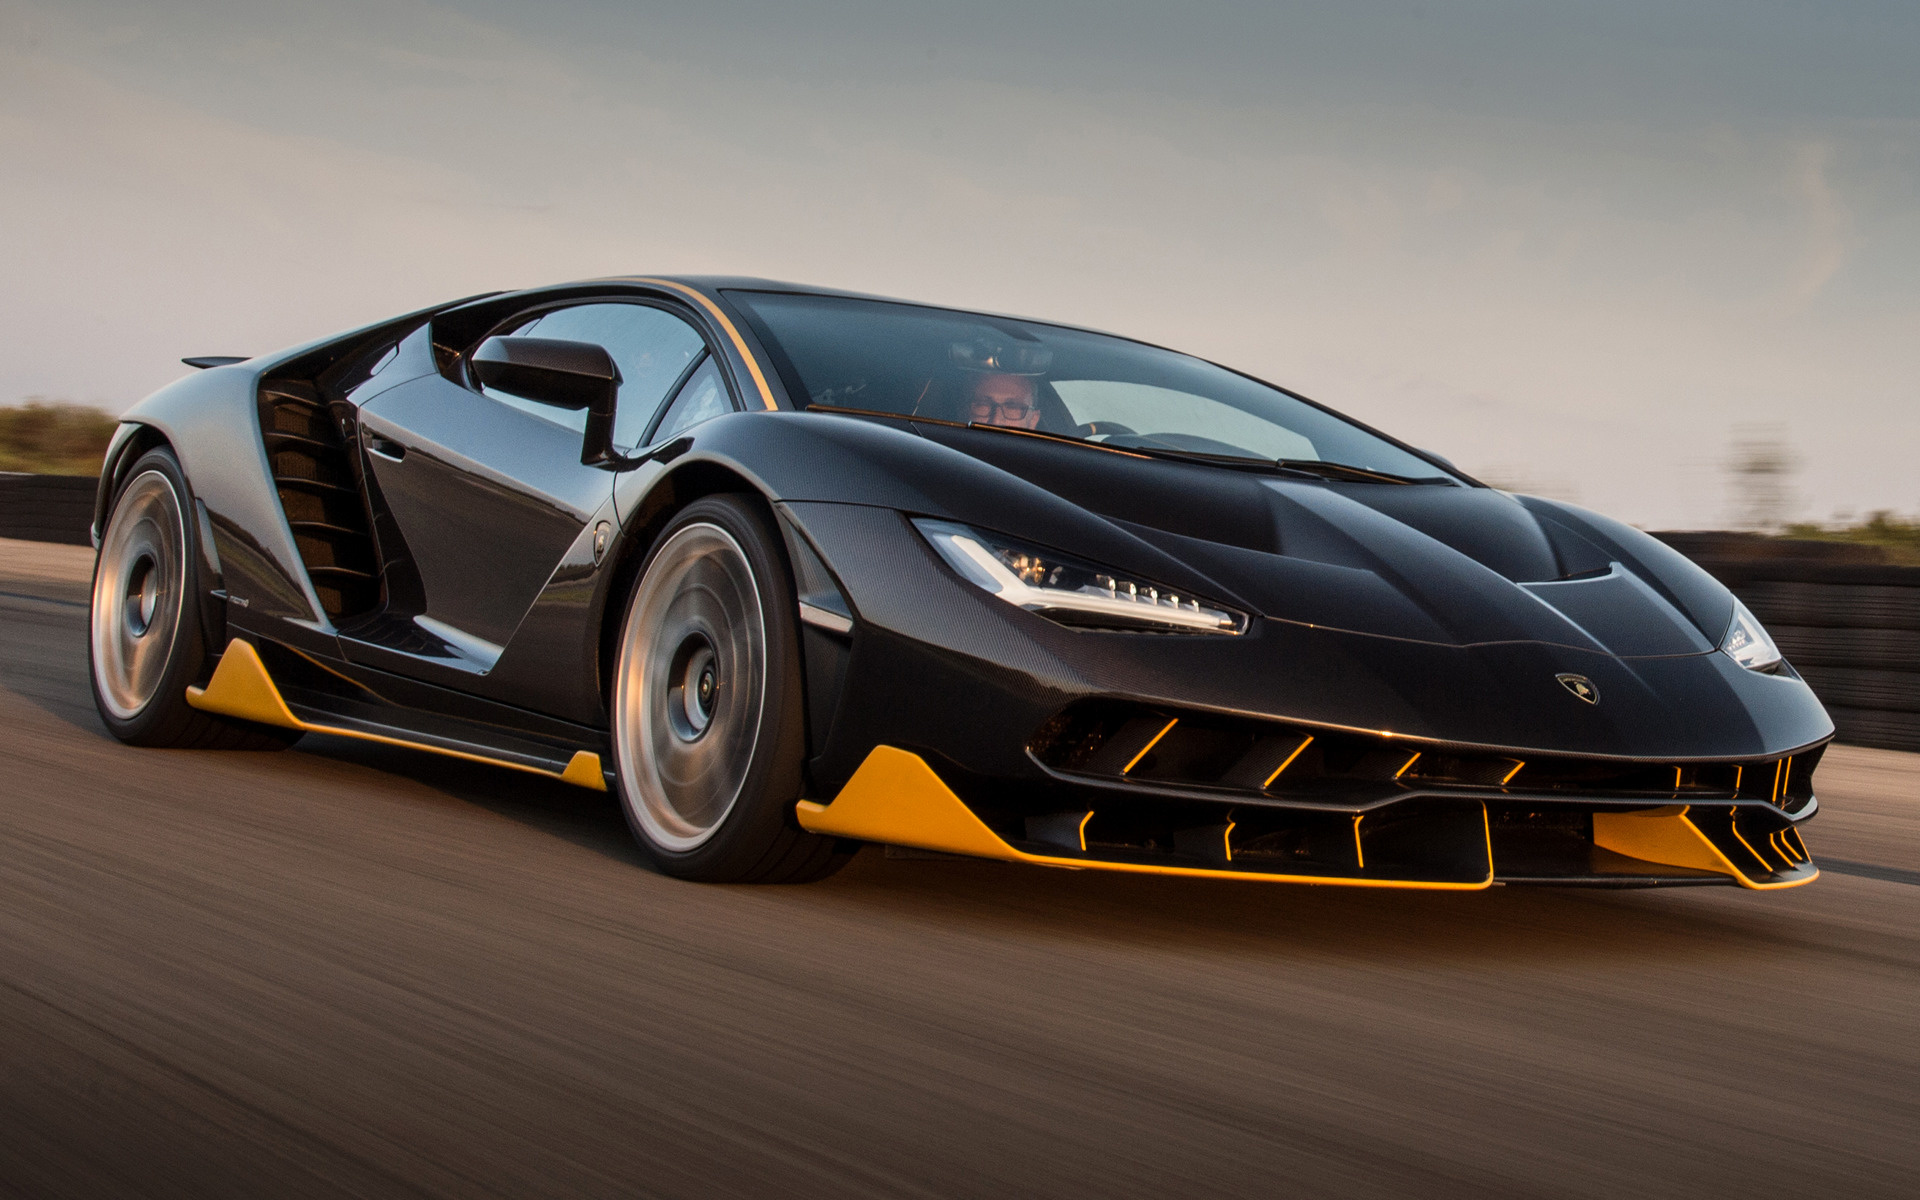 2016 Lamborghini Centenario Wallpapers And HD Images